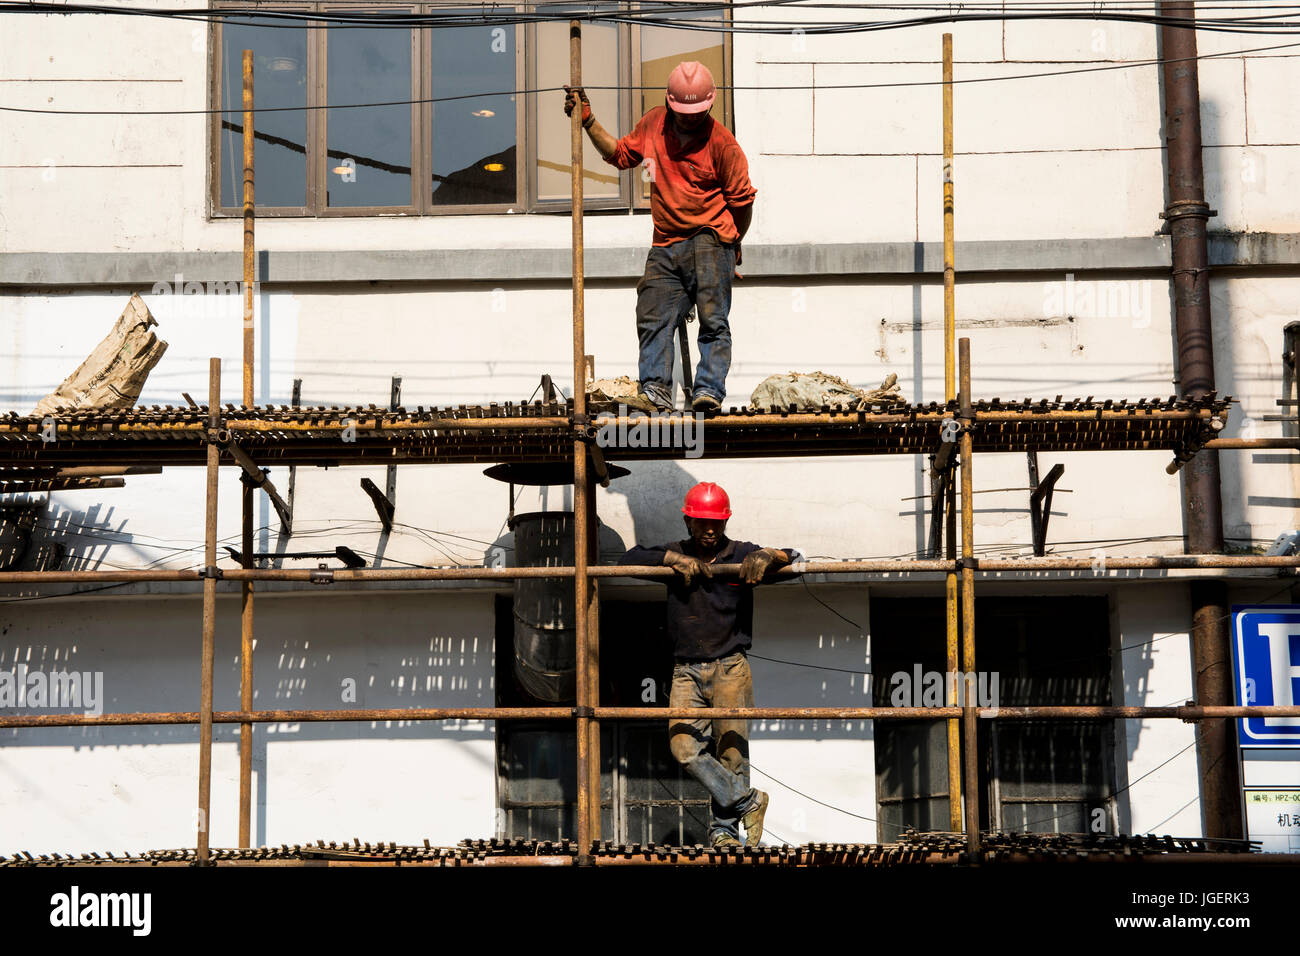 Chinese workers on scaffolding, Shanghai, China. Stock Photo